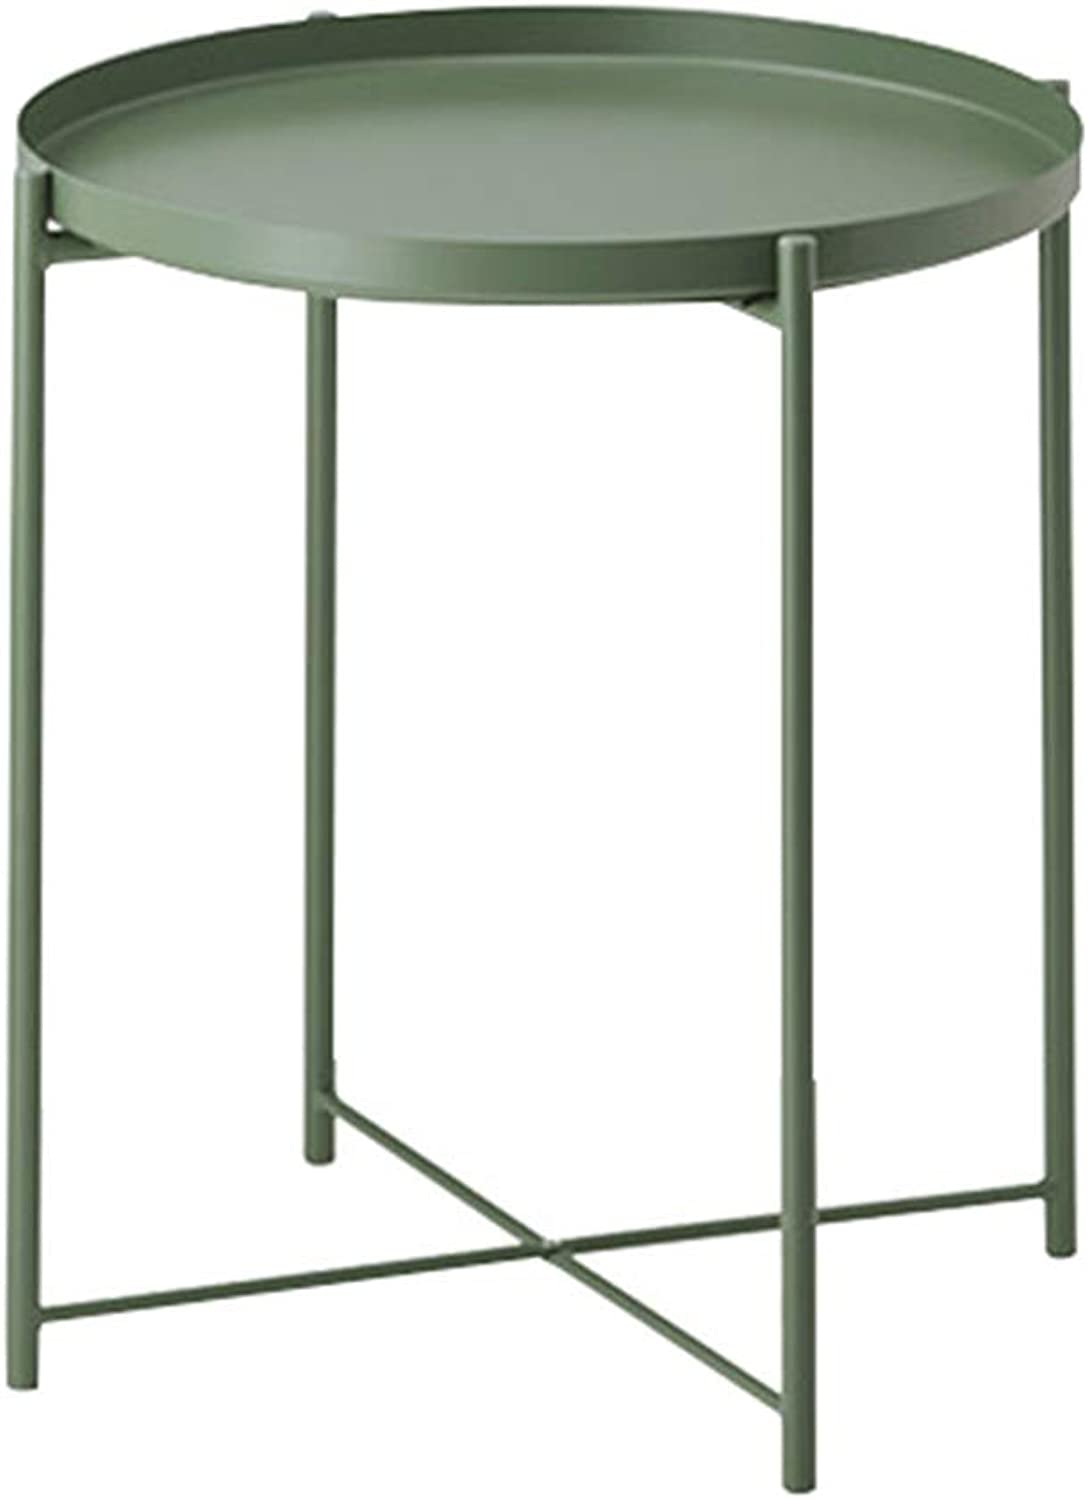 JCOCO Nordic Wrought Iron Small Coffee Table, Round Balcony Table Modern Minimalist Fashion Personality Small Coffee Table (color   Green)